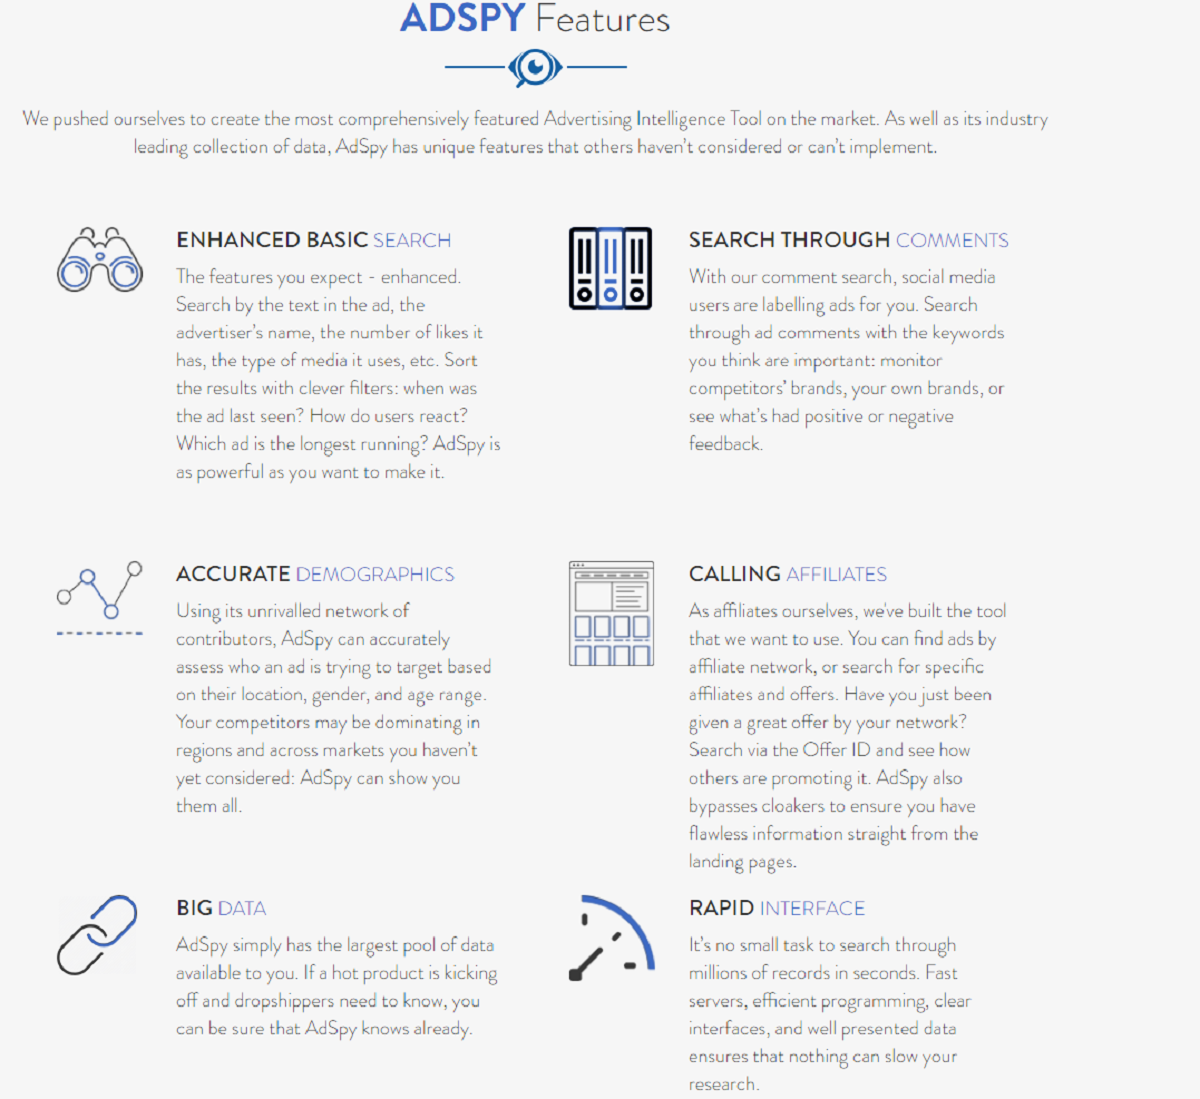 What Are the Features of Adspy?